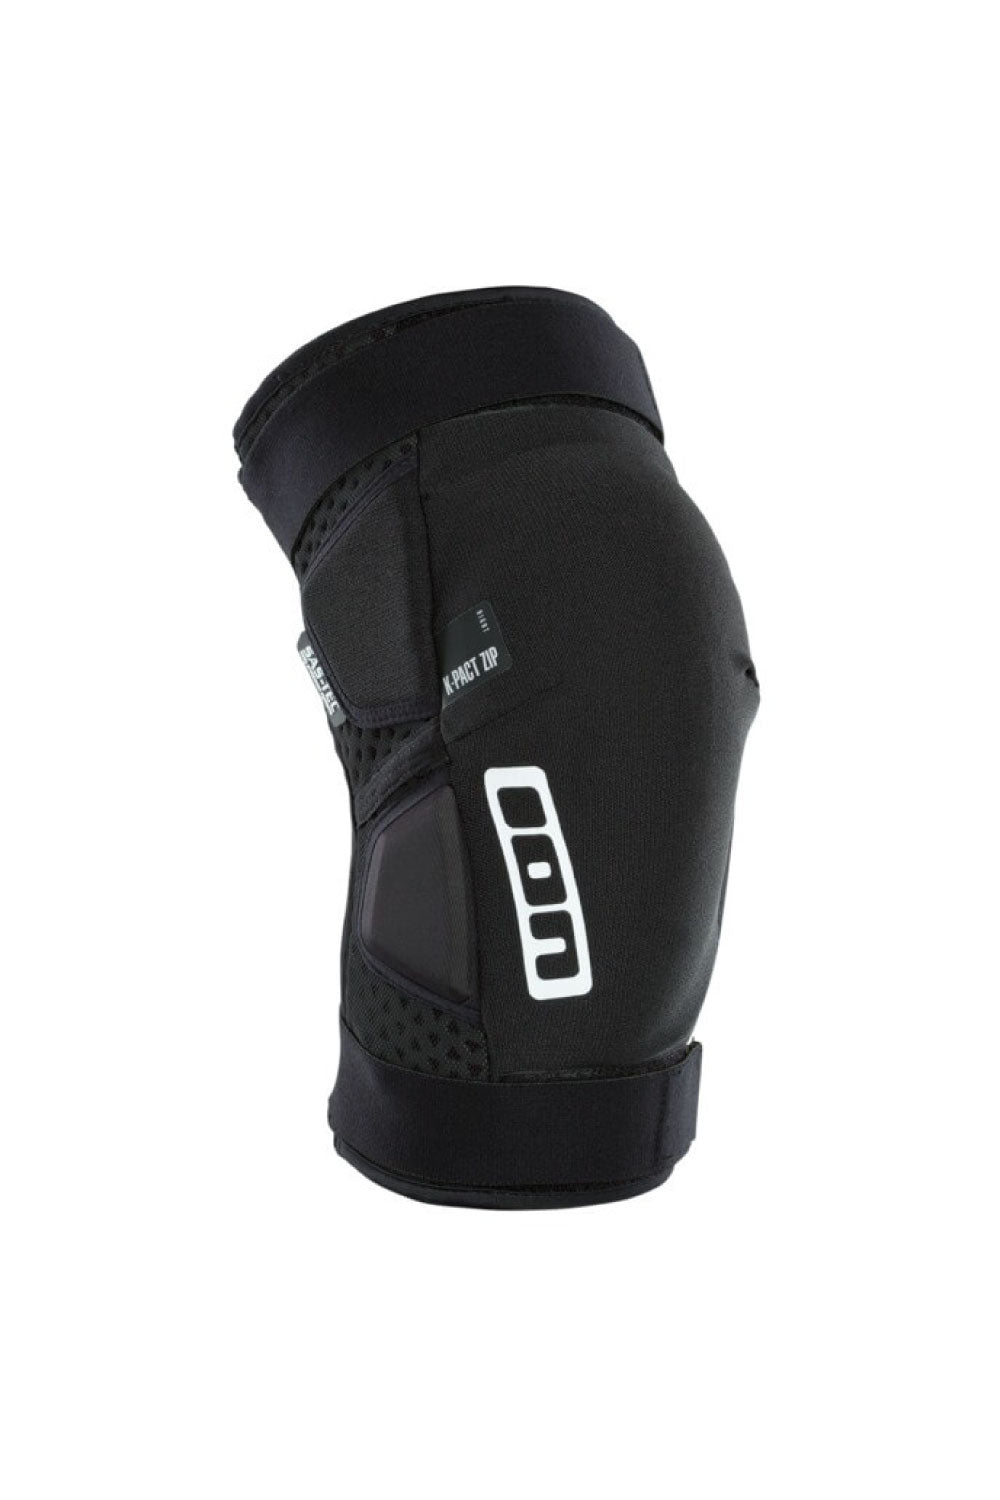 Ion K-Pact-Zip MTB Knee Pads